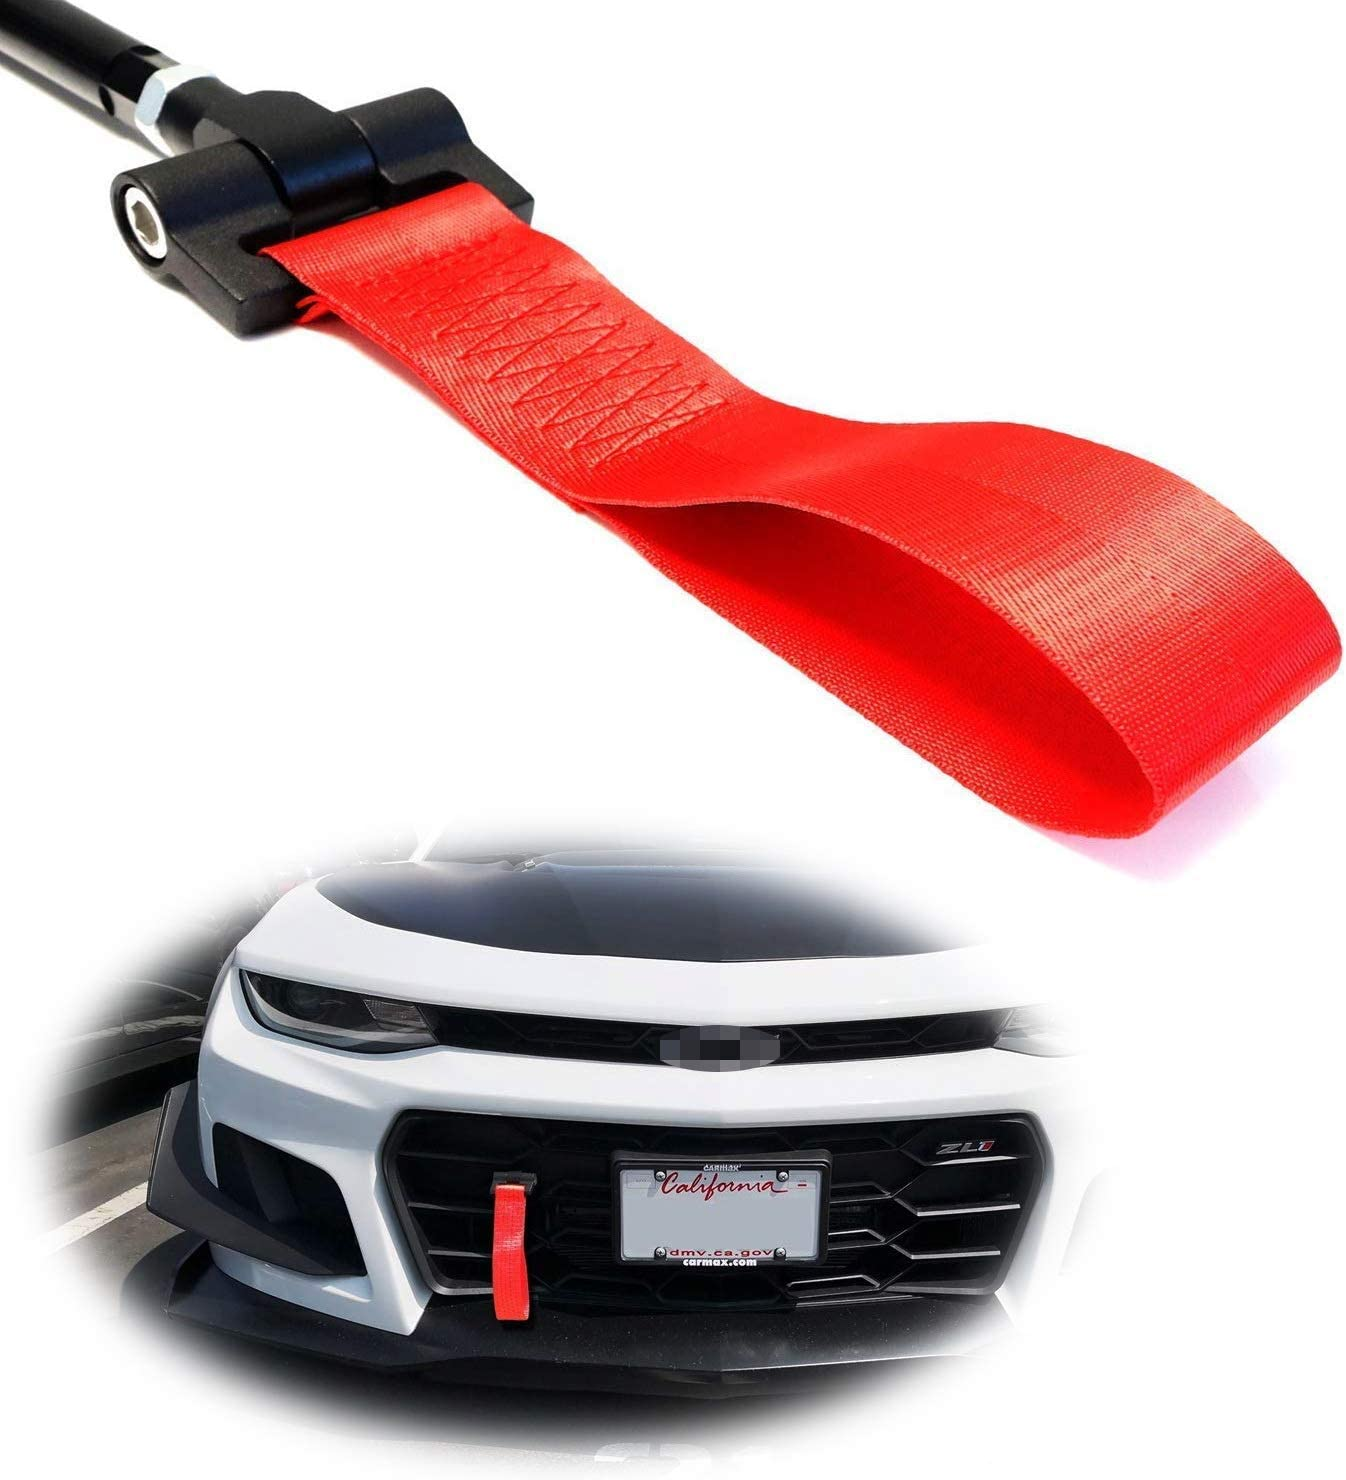 RASTP High Strength Tow Strap Red